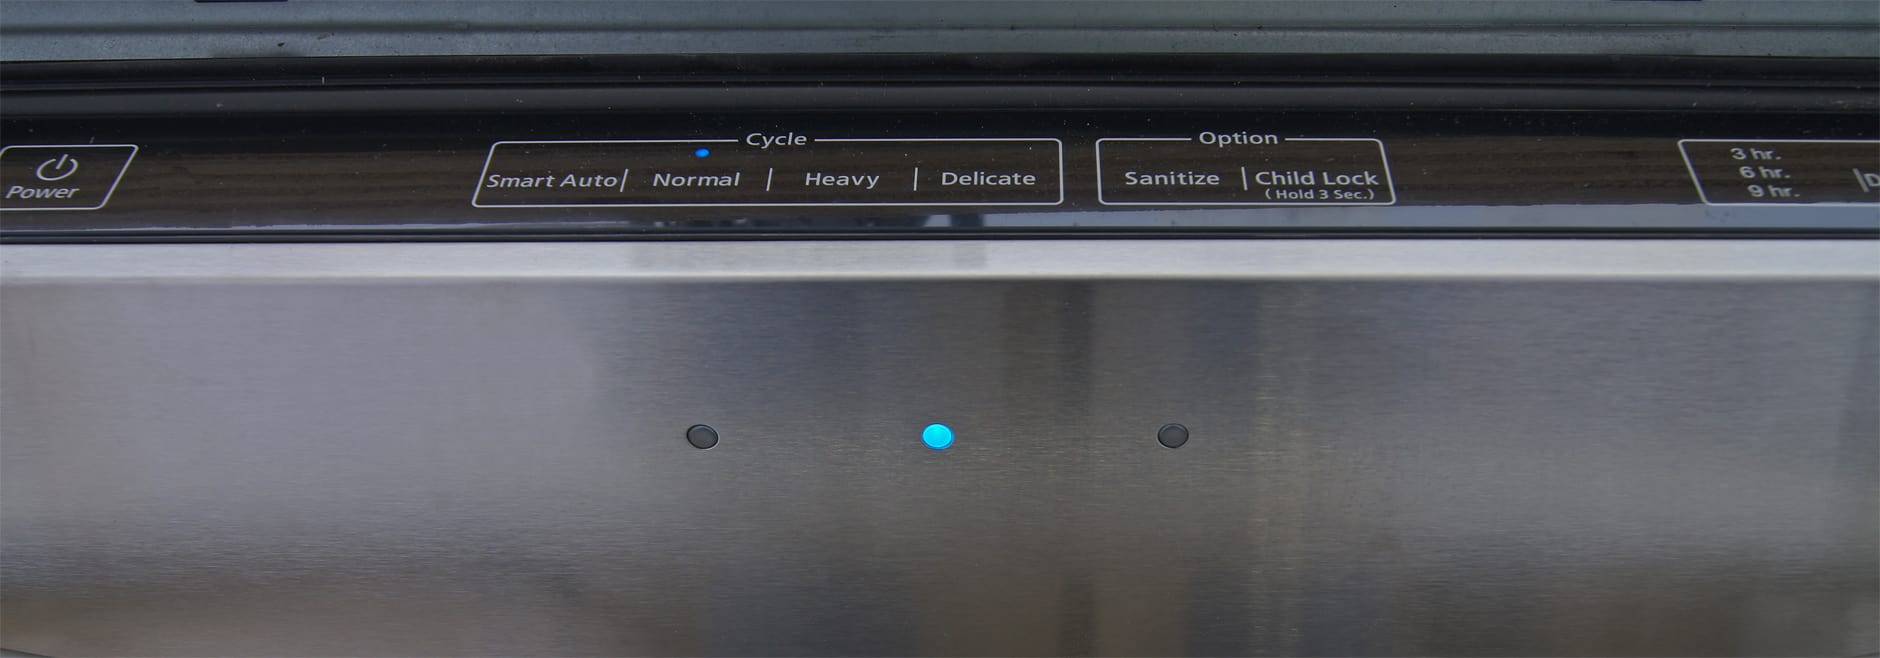 Indicator lights on the Samsung DW80F600UTS's front for showing wash progress